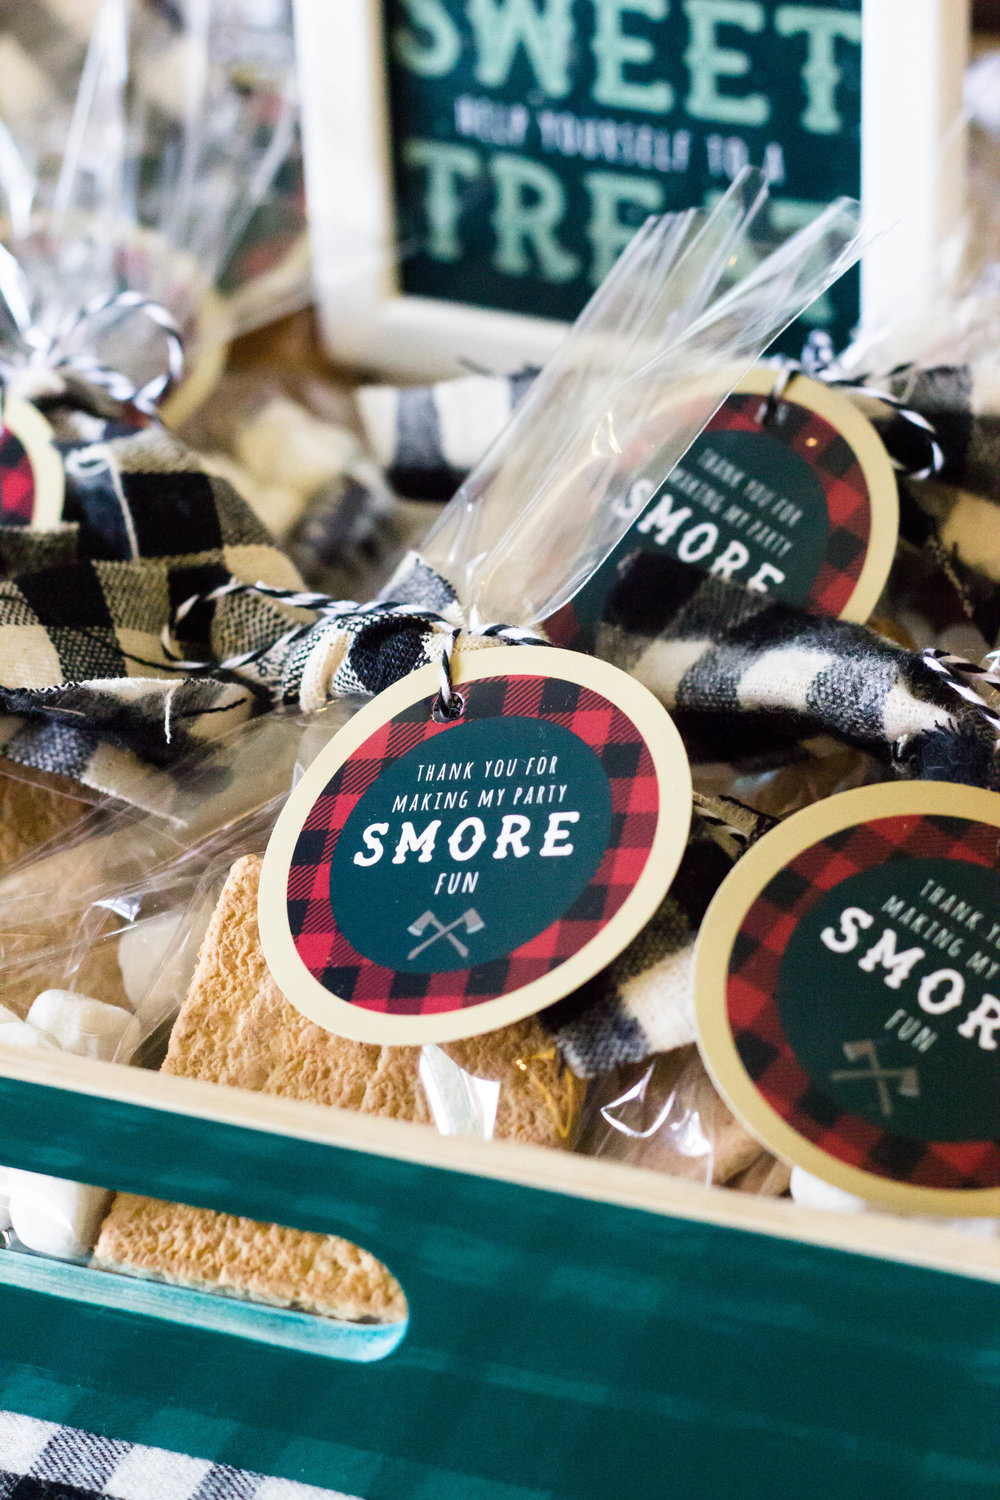 S'mores favor tags from MKKM Designs. Free printable on shopmkkm.com